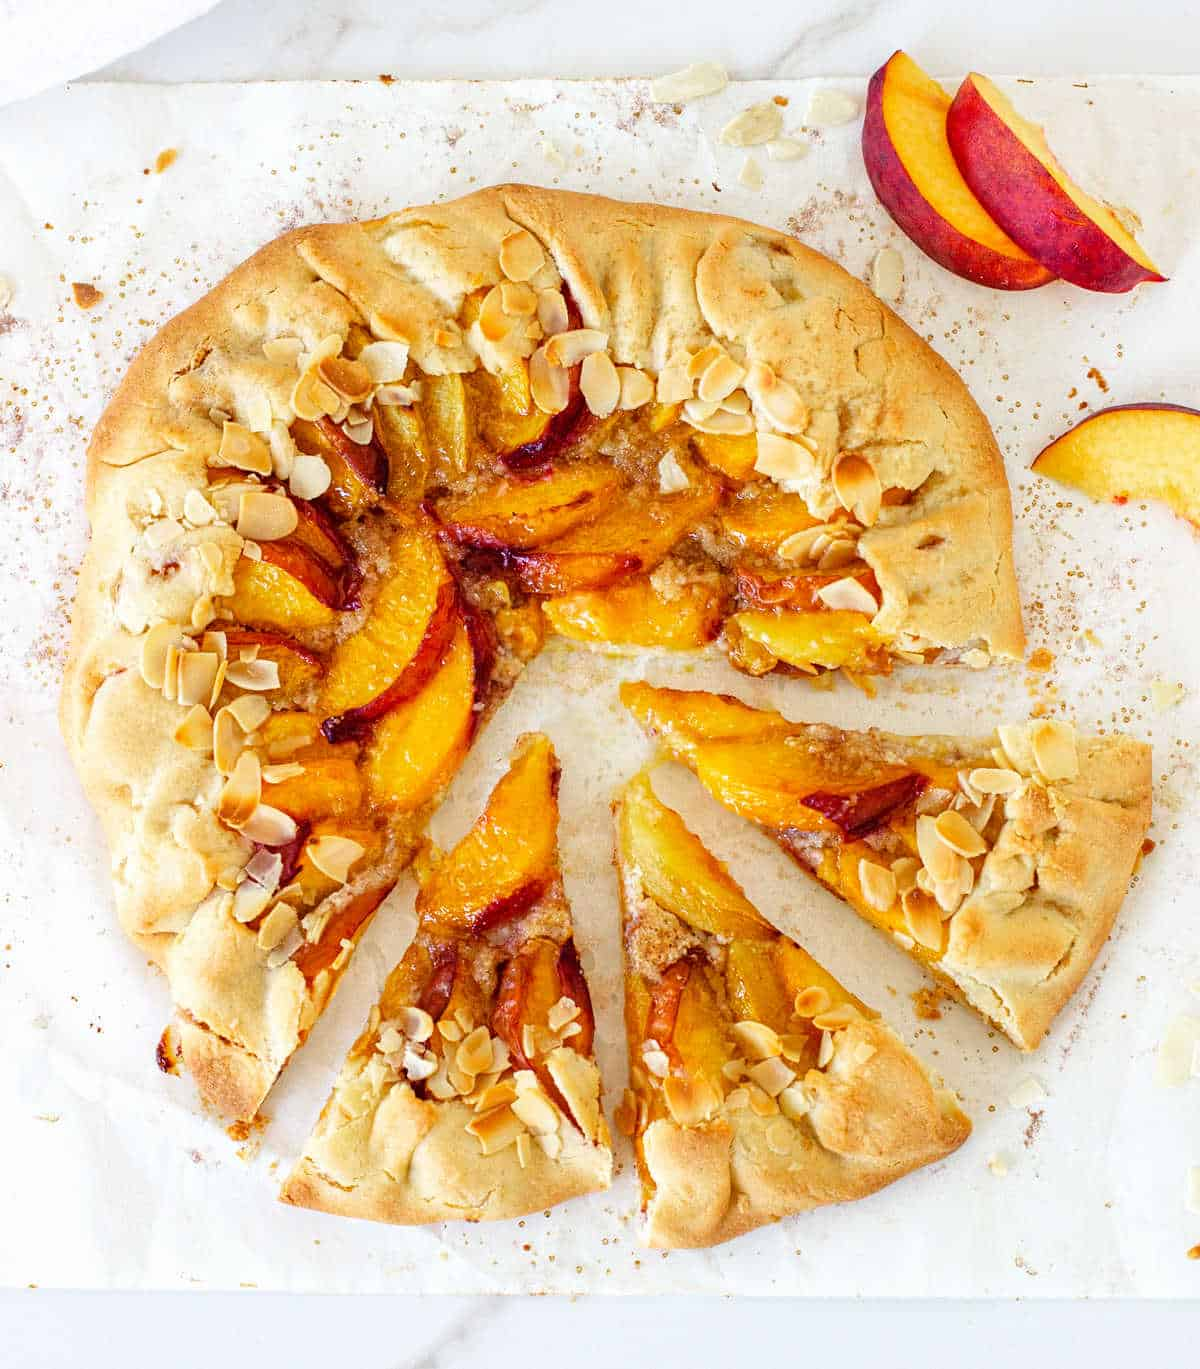 Whole baked peach galette on parchment paper, top view